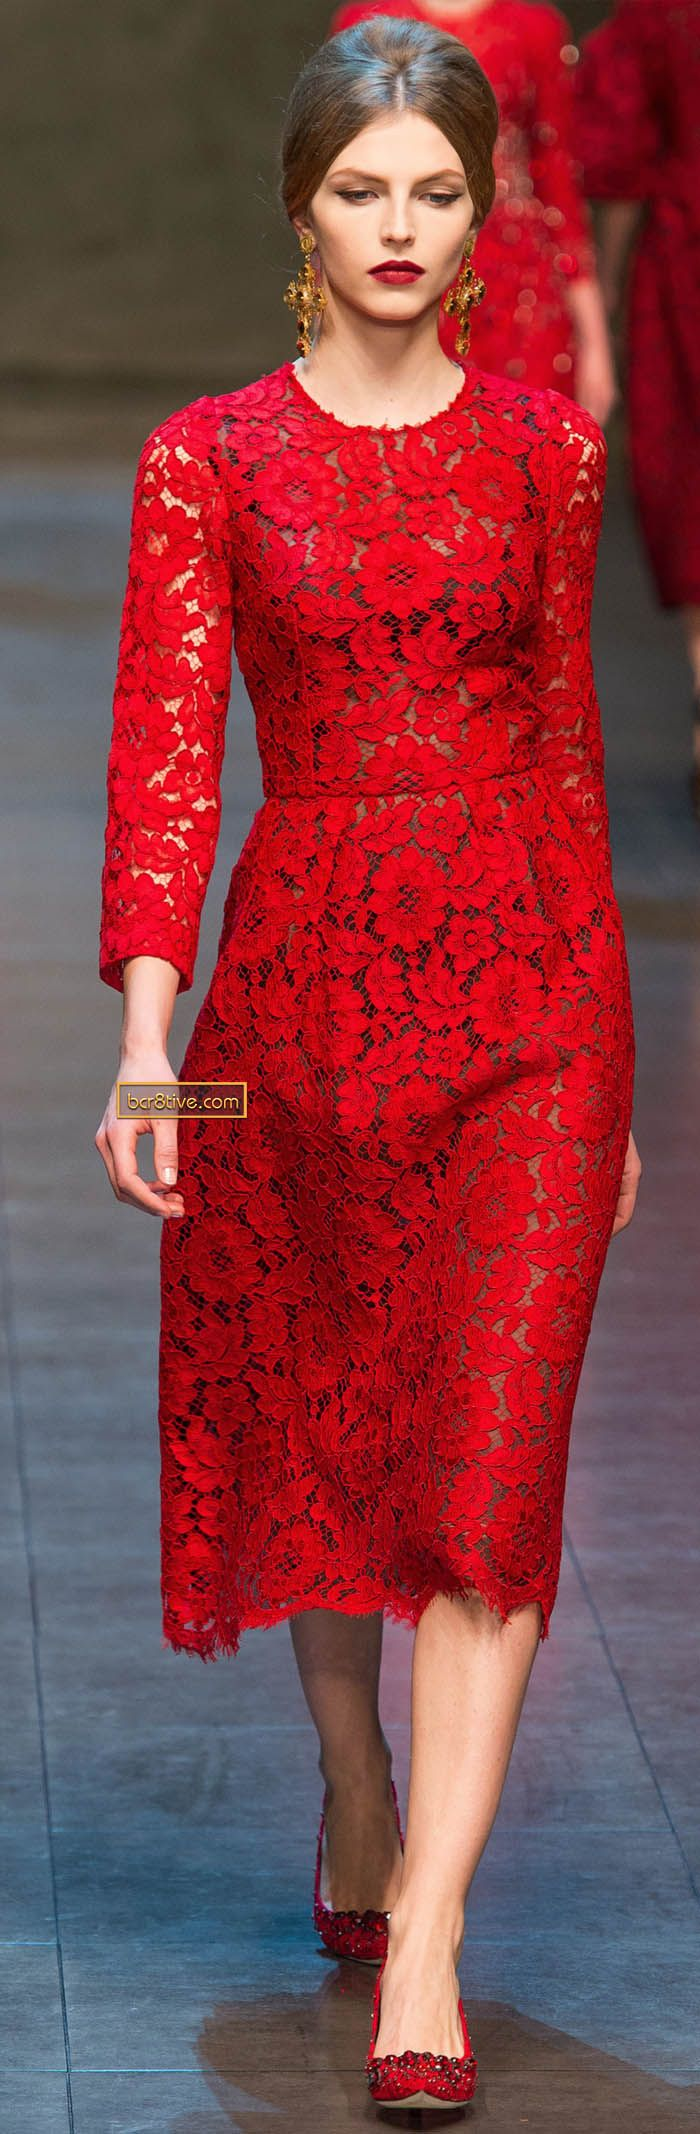 mid-length red lace dress by Dolce & Gabbana